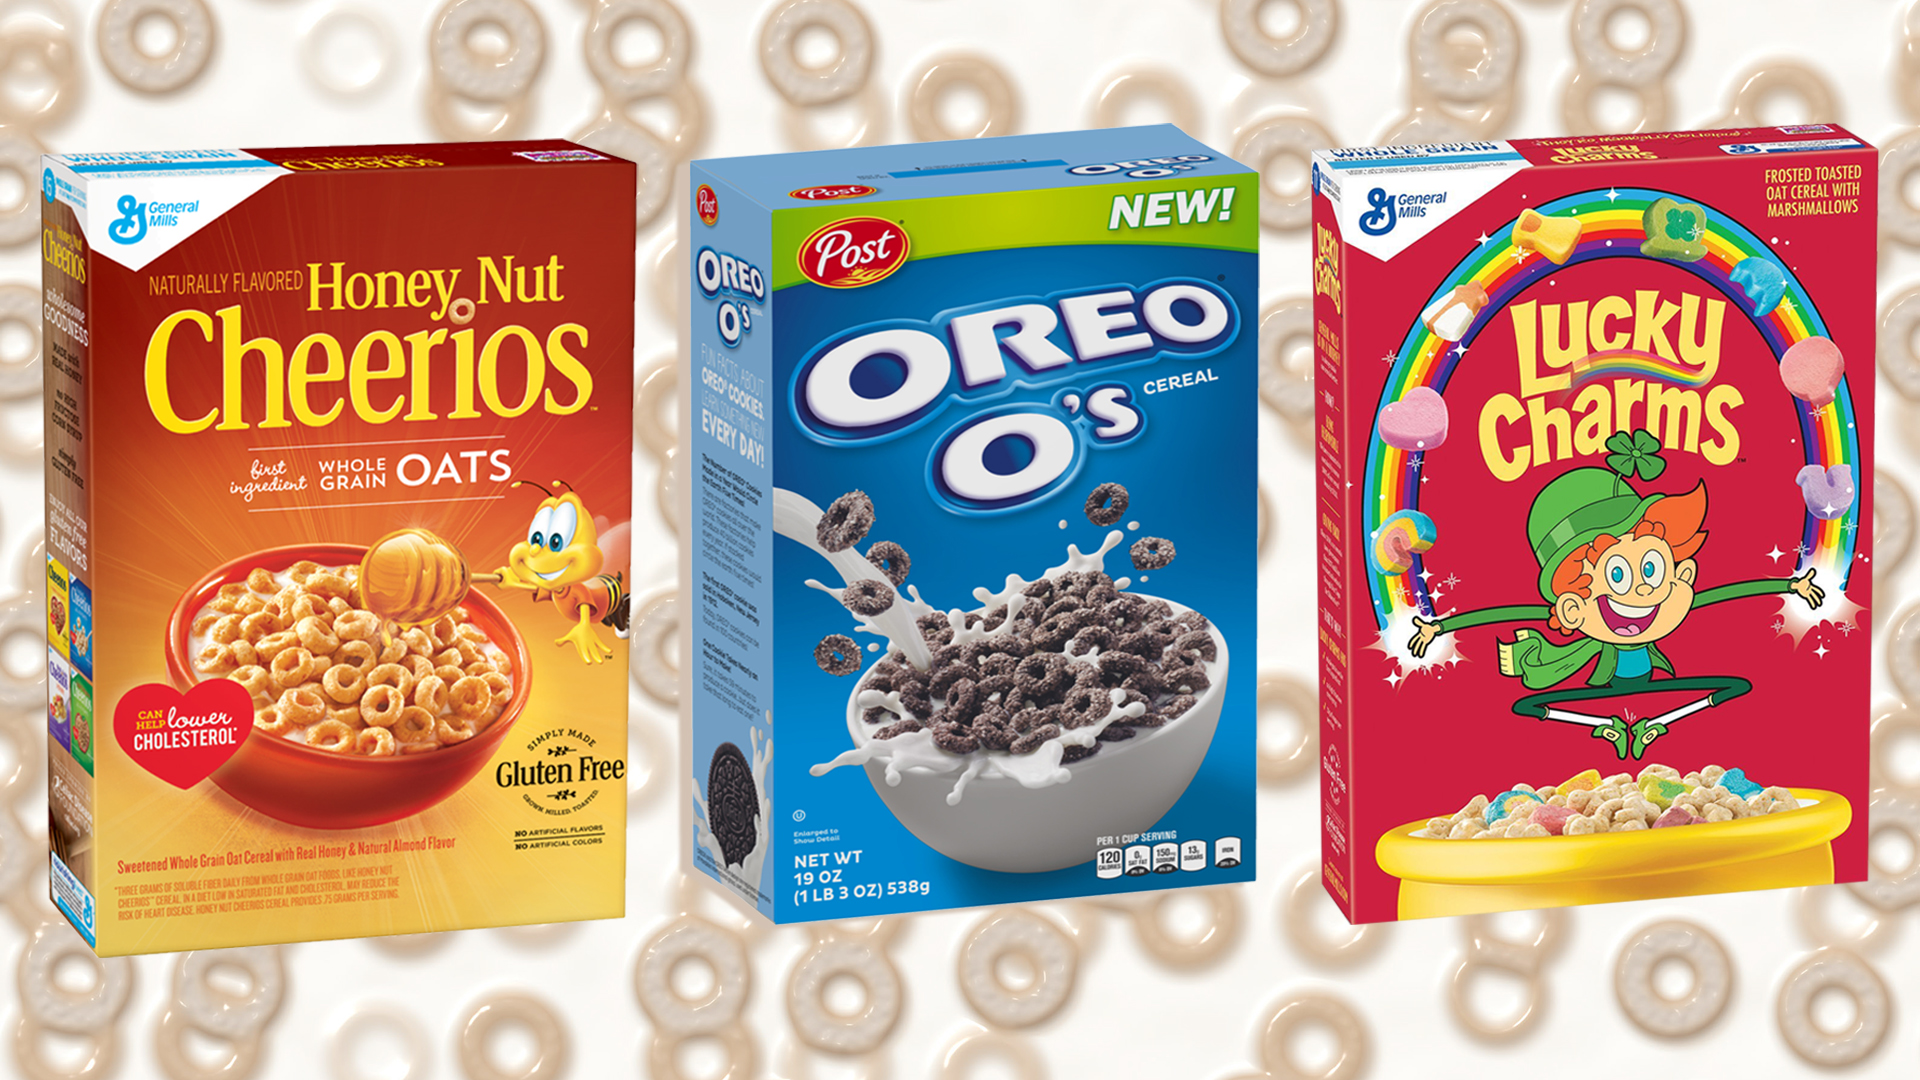 most popular cereal in america according to google